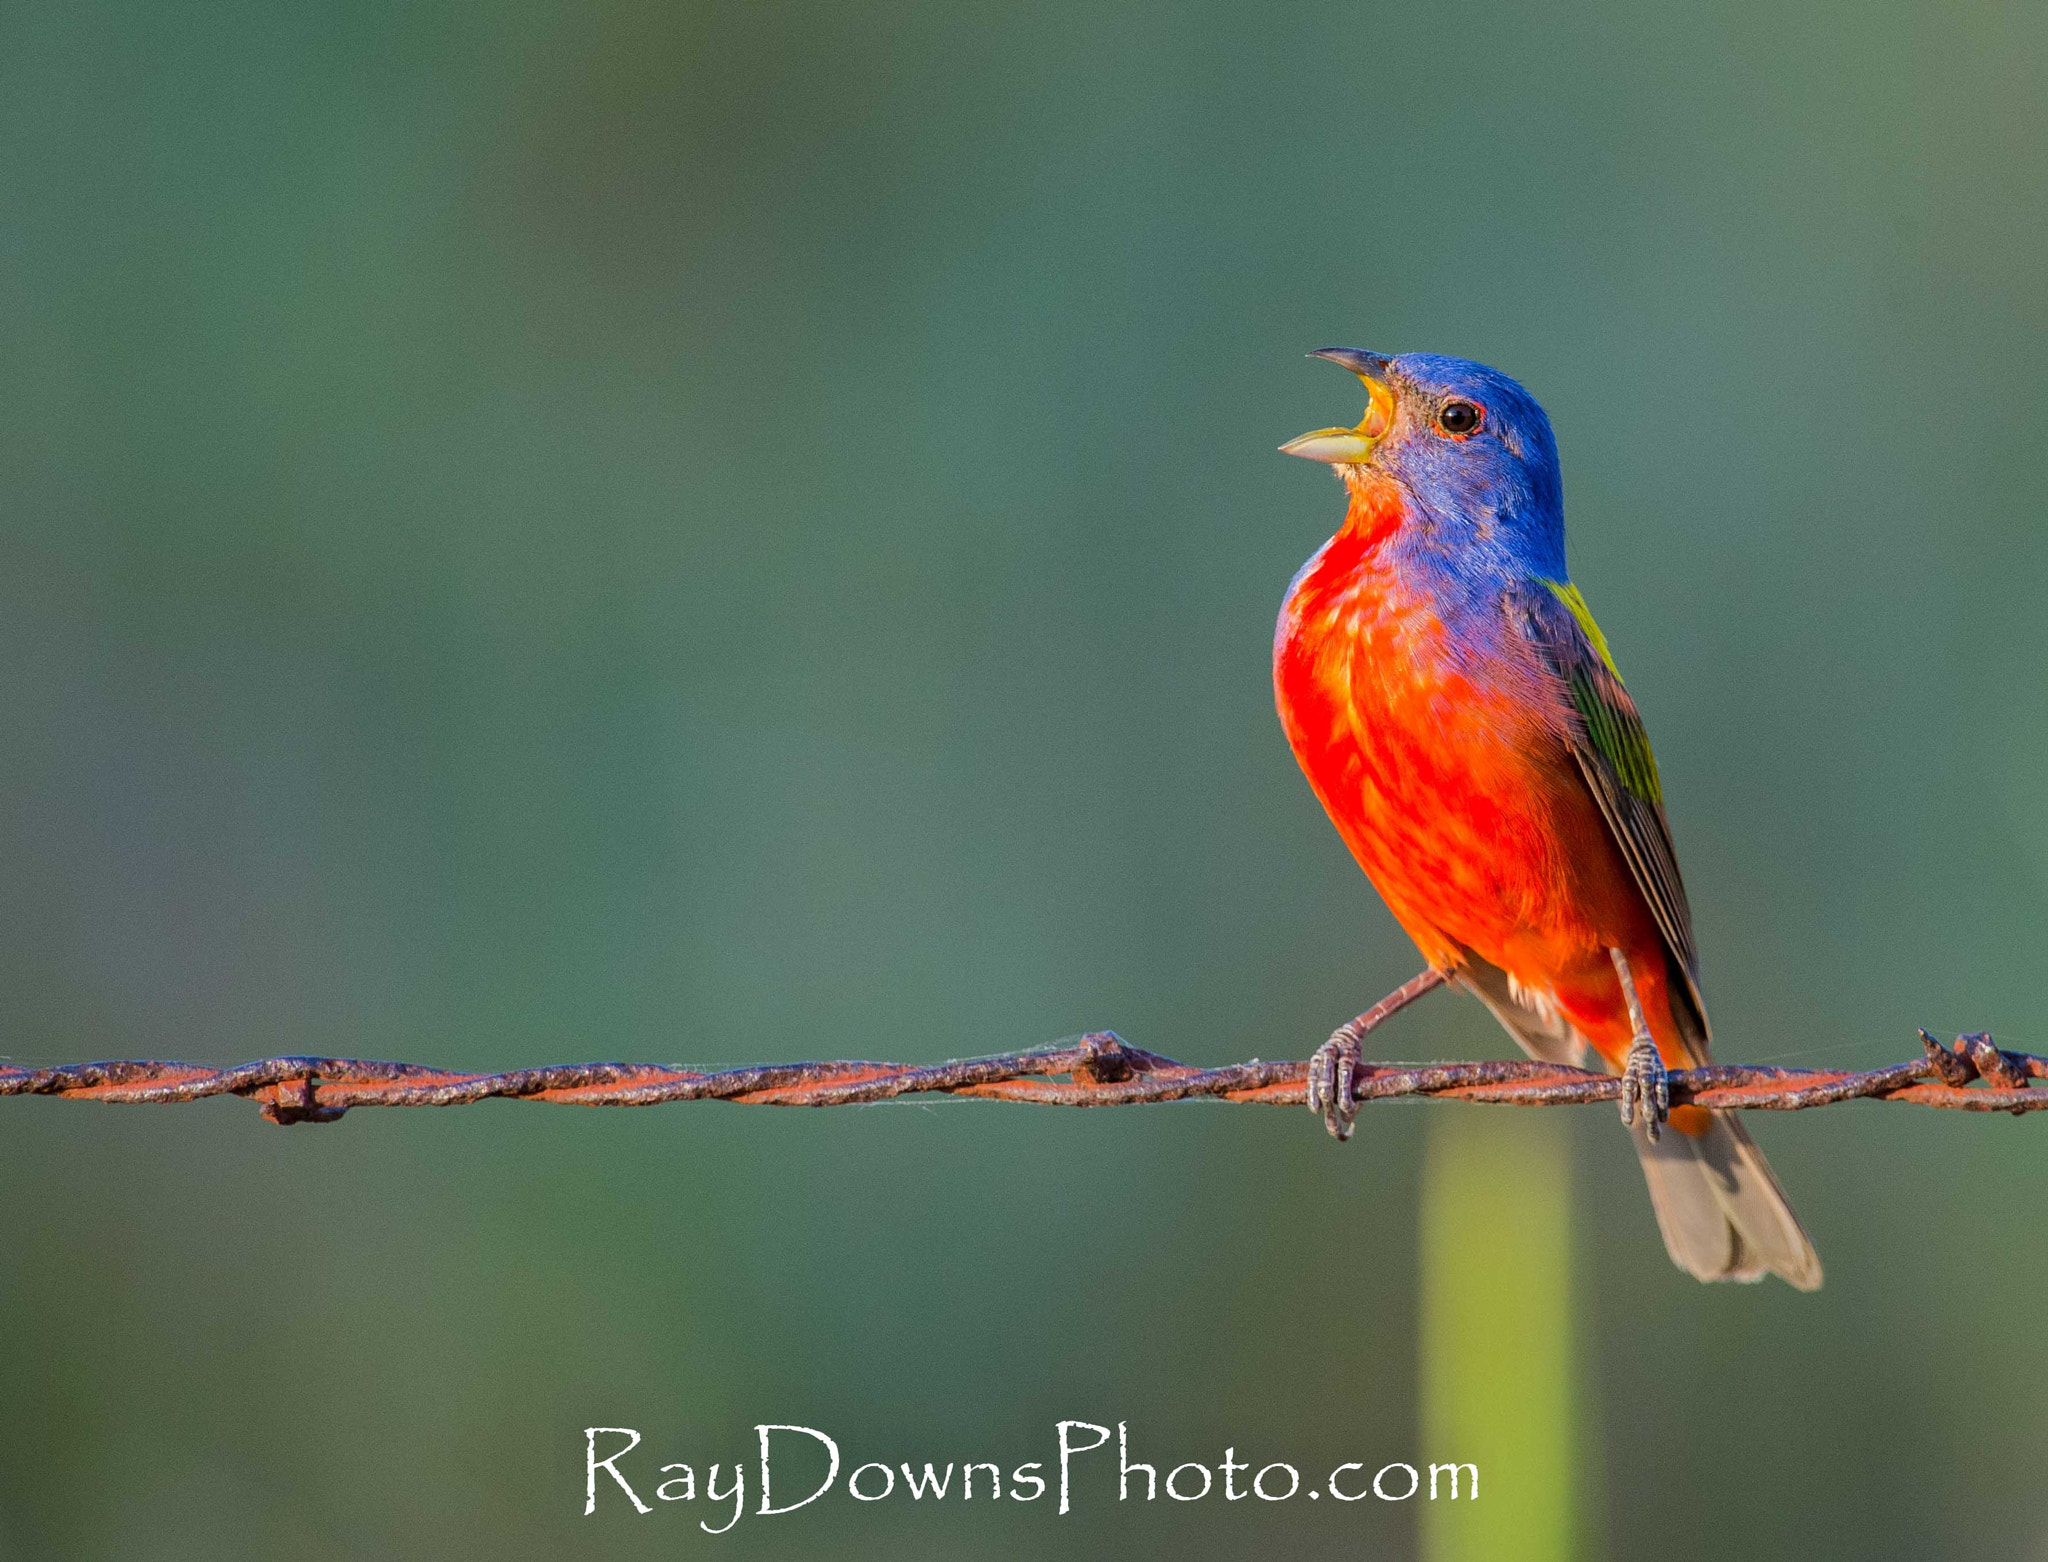 Photograph Painted Bunting Male Singing by Ray Downs on 500px